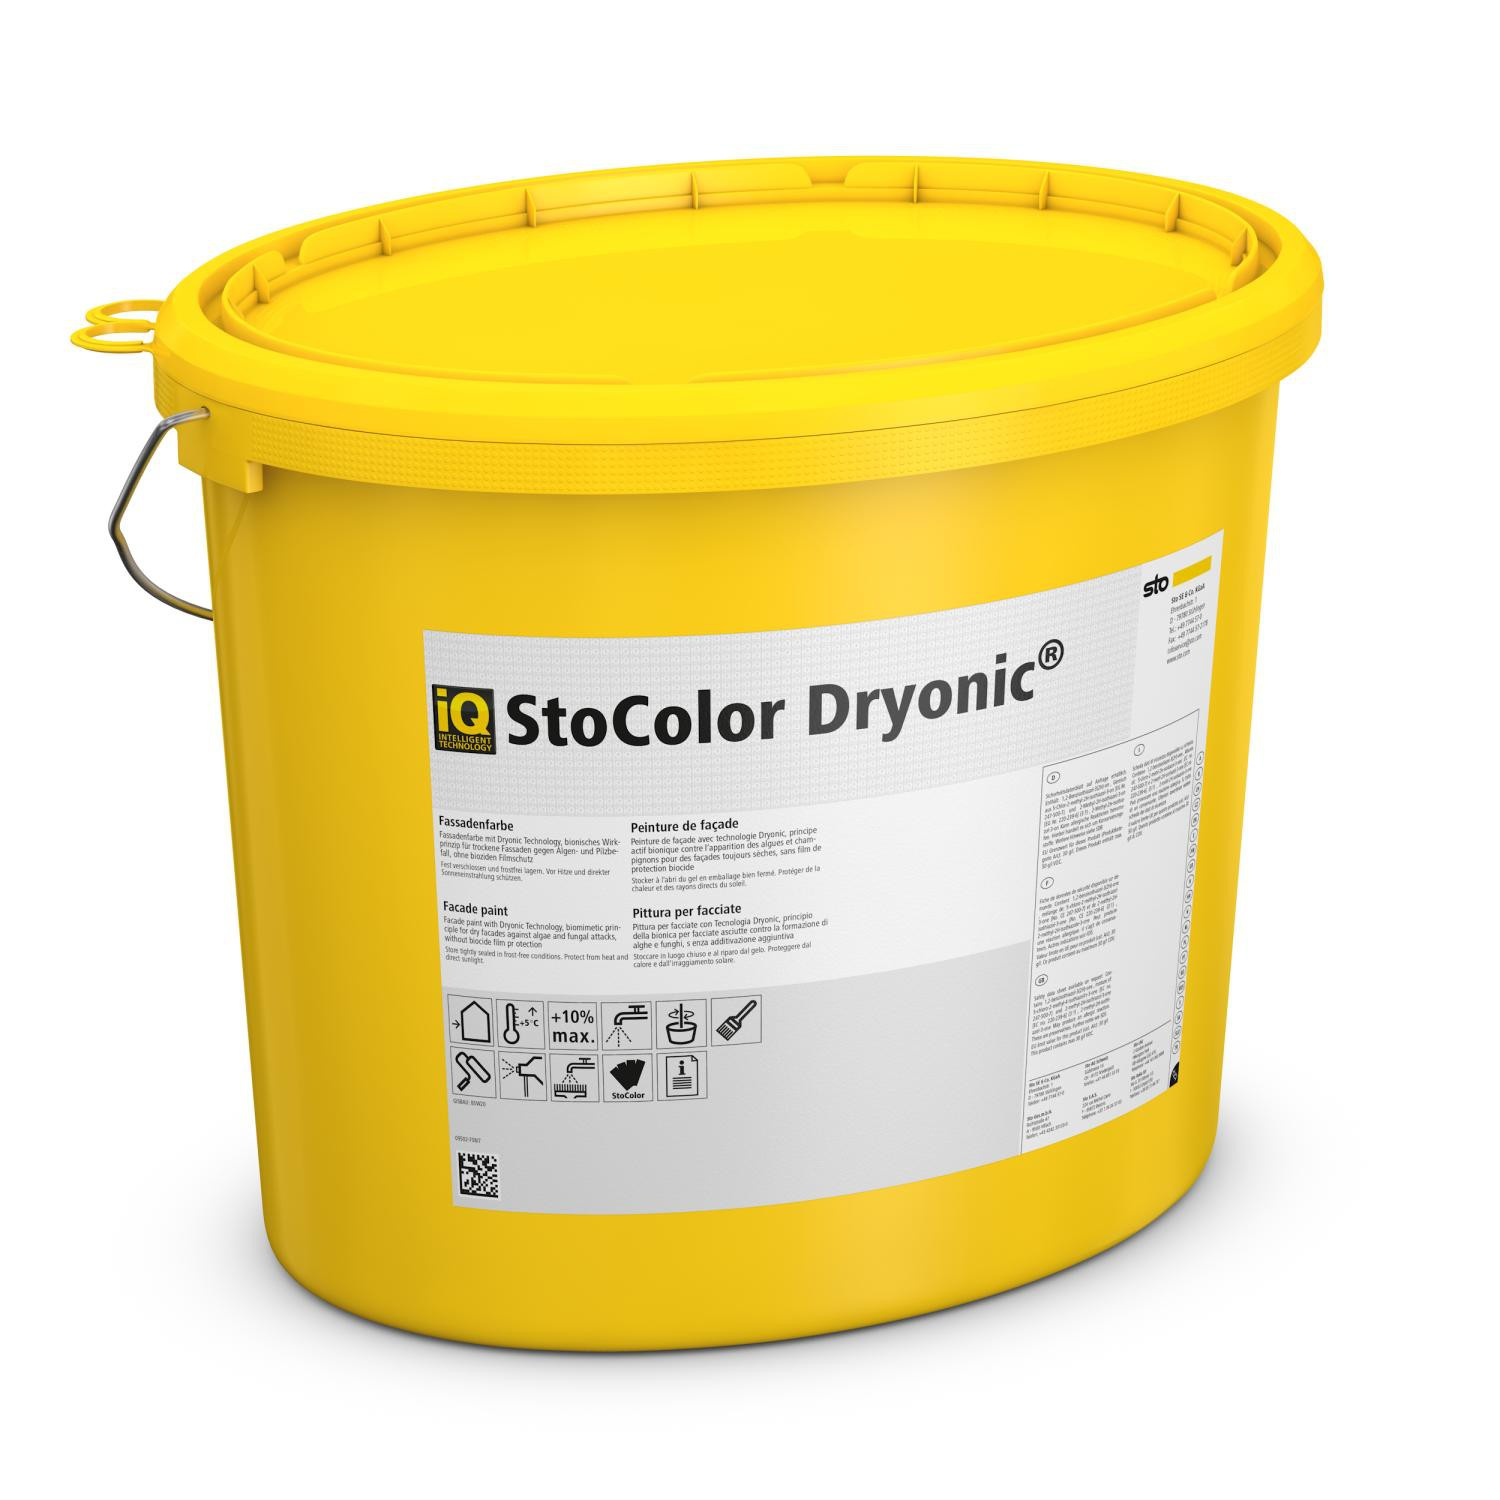 sto-color-dryonic